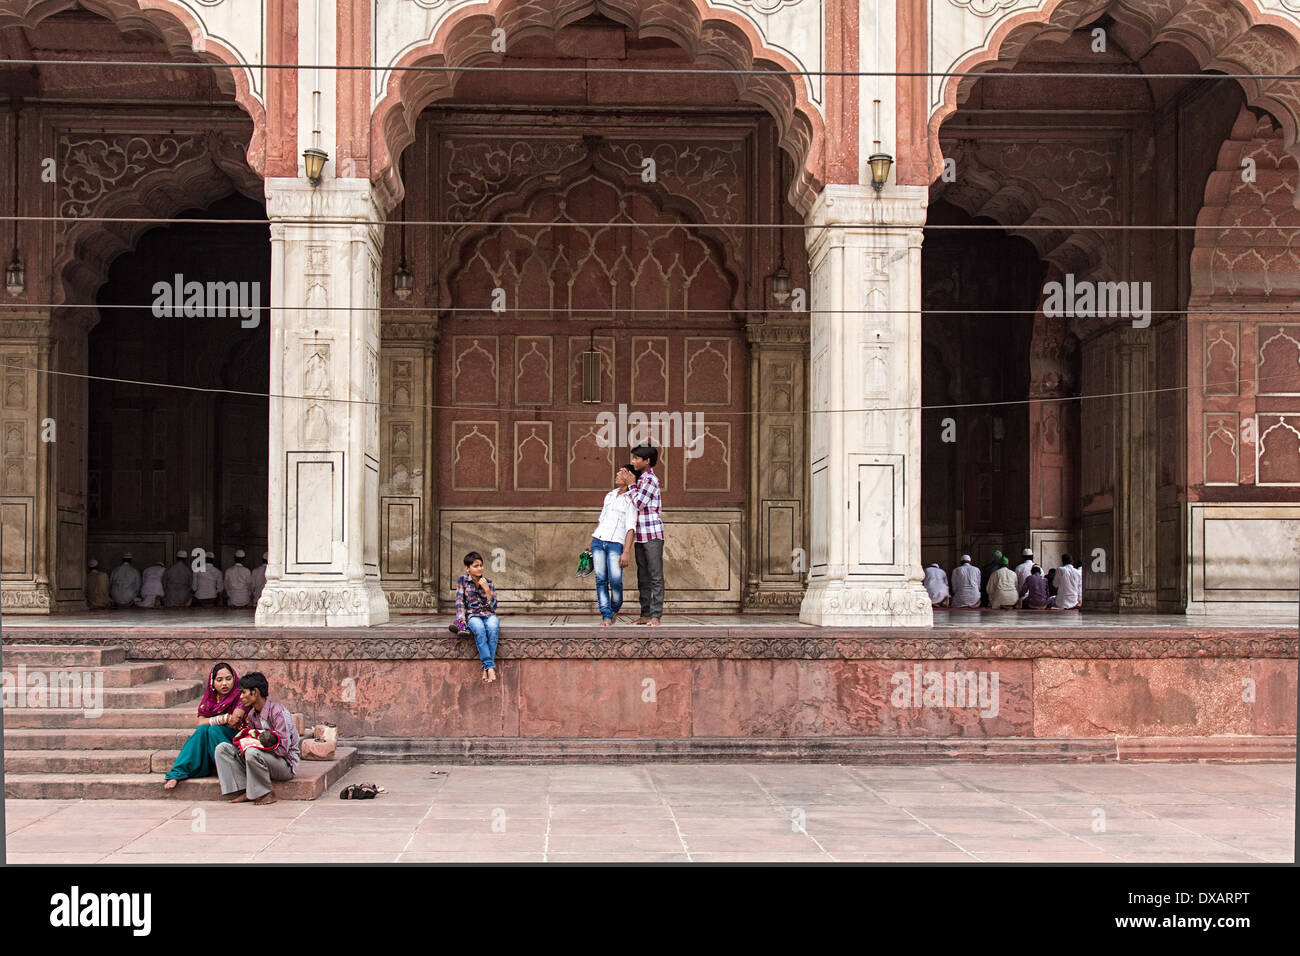 Worshippers inside and outside Jama Masjid Mosque in Delhi, India - Stock Image